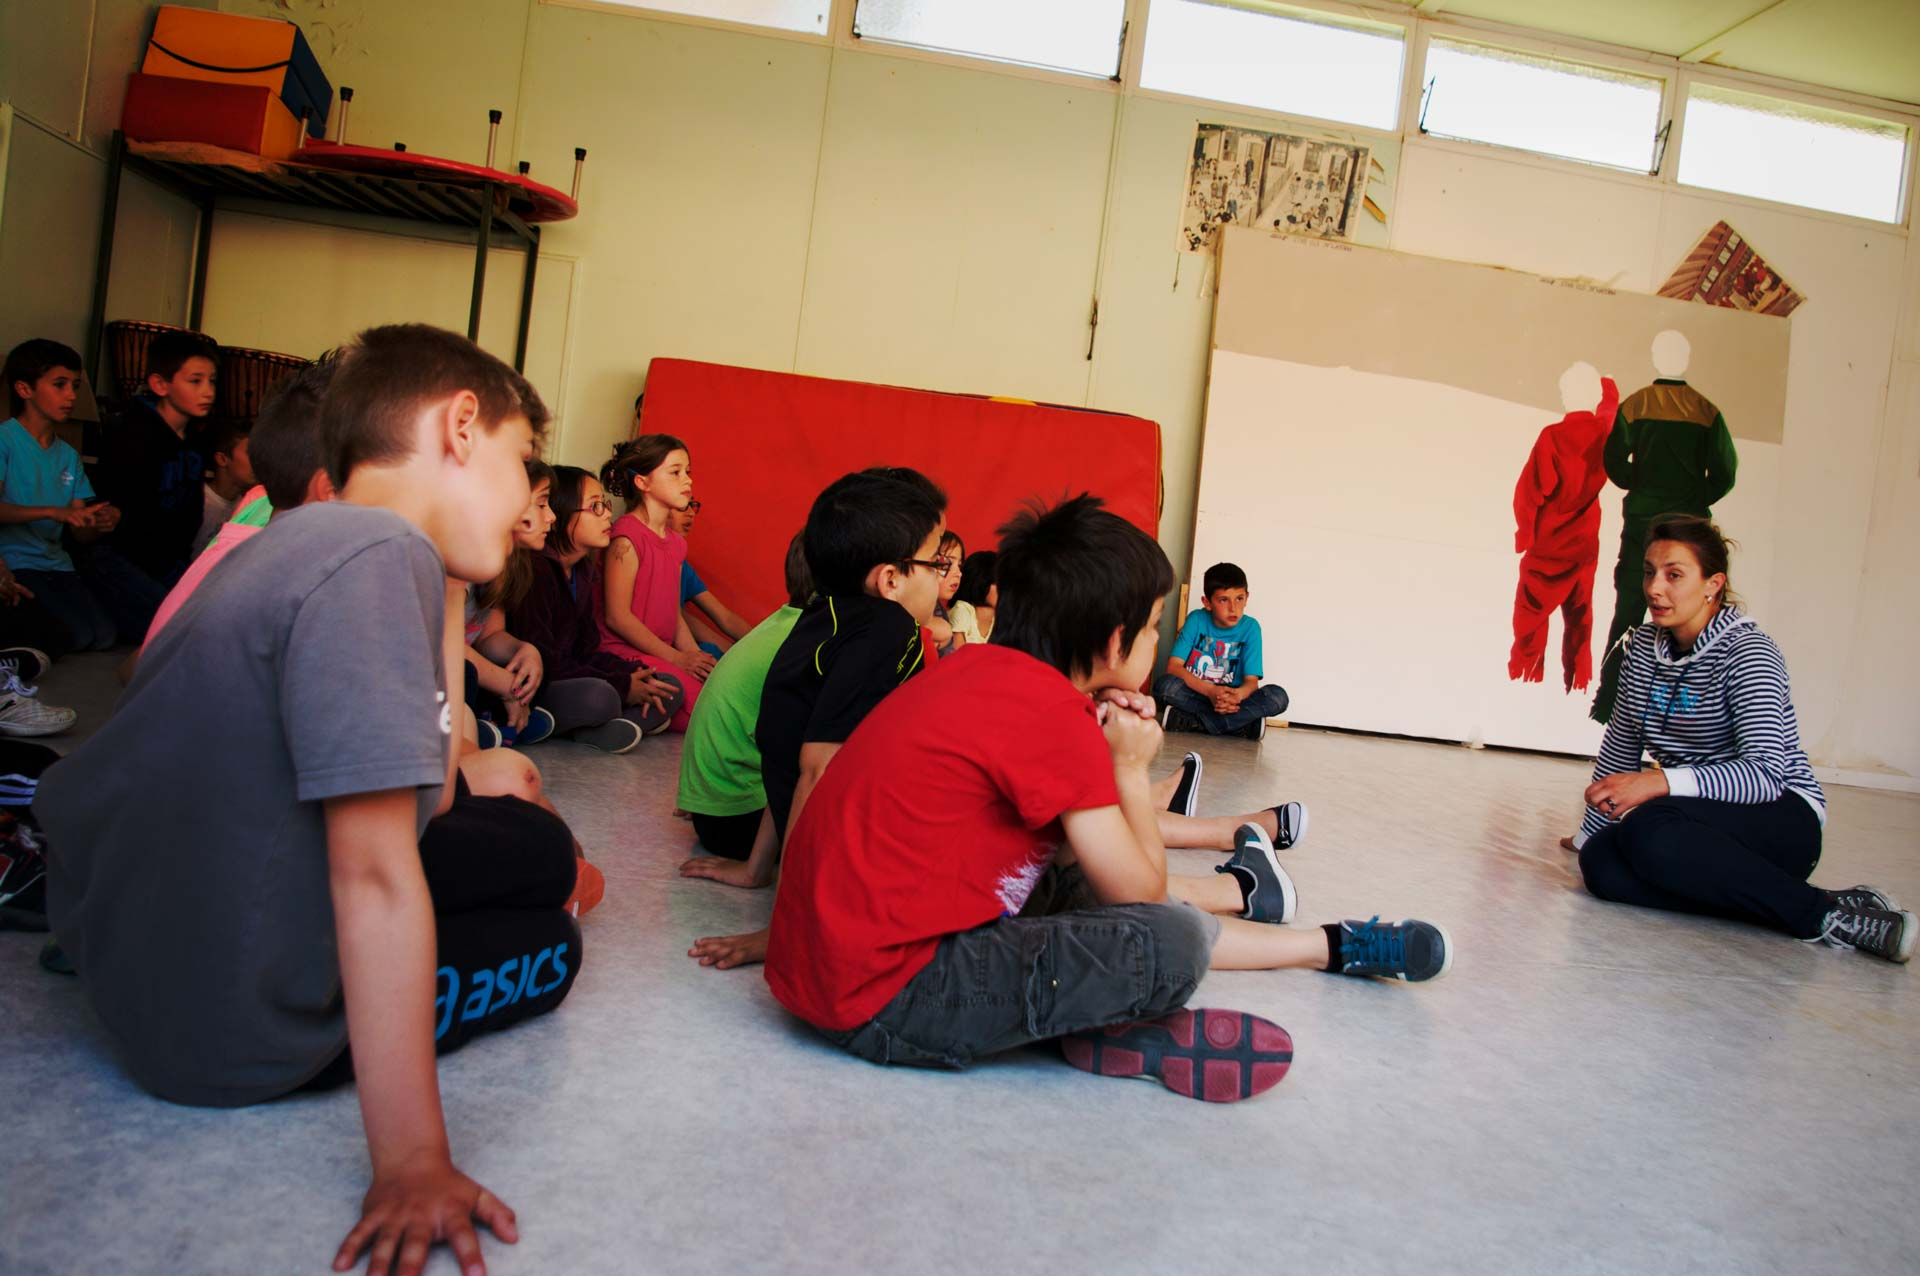 interventions-scolaire--art-contemporain-ariege.jpg